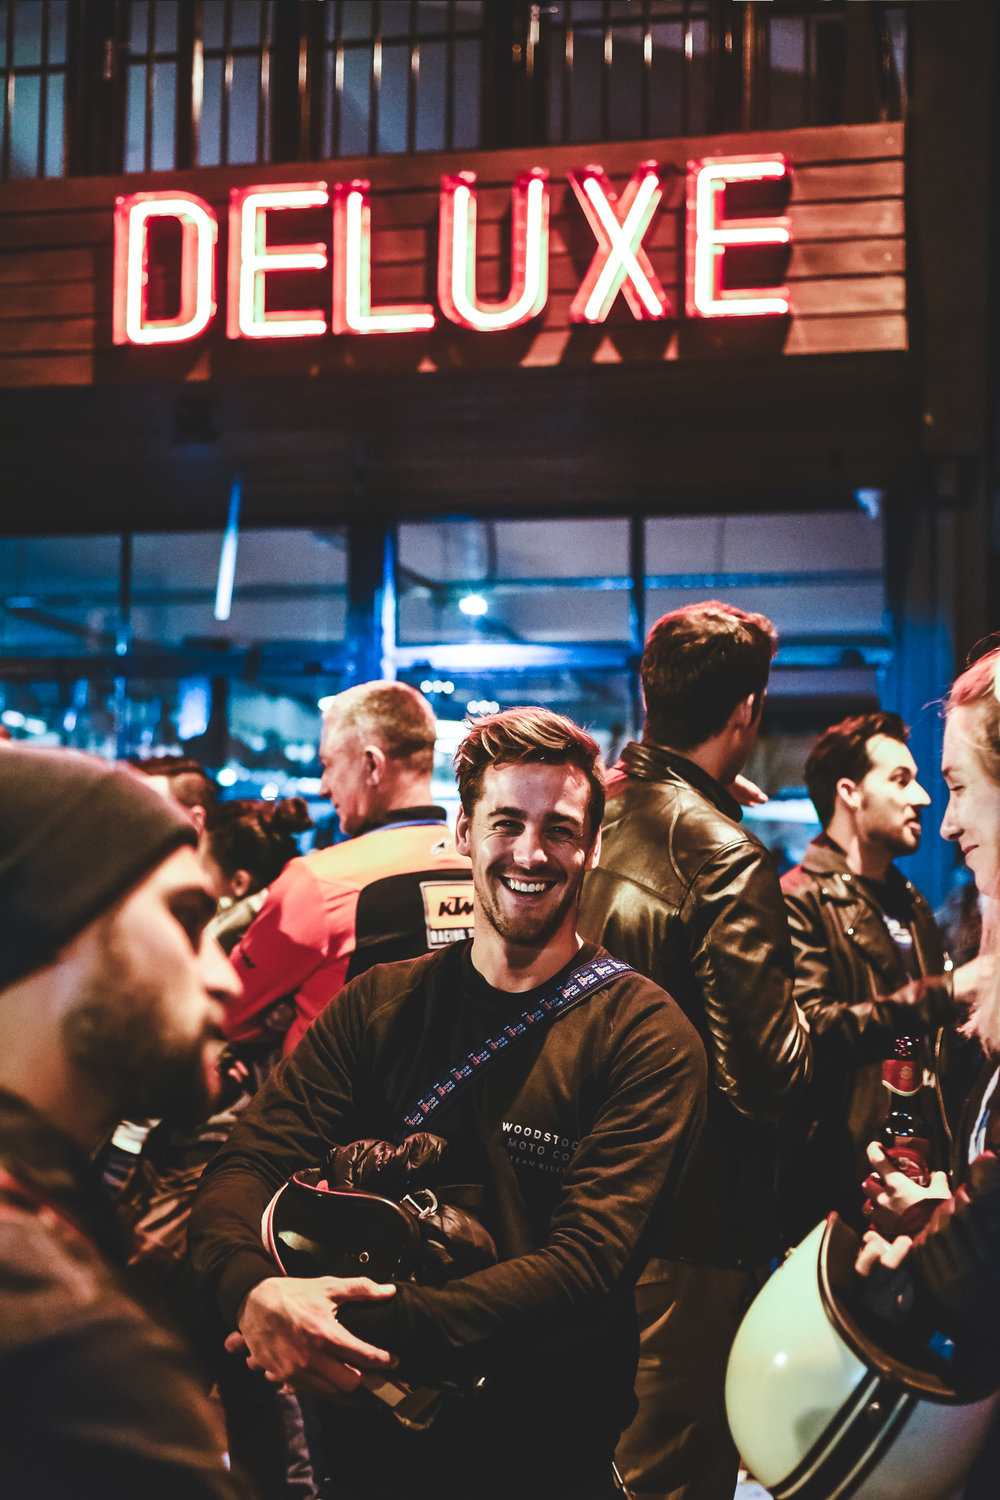 DevinPaisley_#TheMotoSocialCAPETOWN_May_25_2017_DeluxeCoffeworks_DHP_1085.jpg